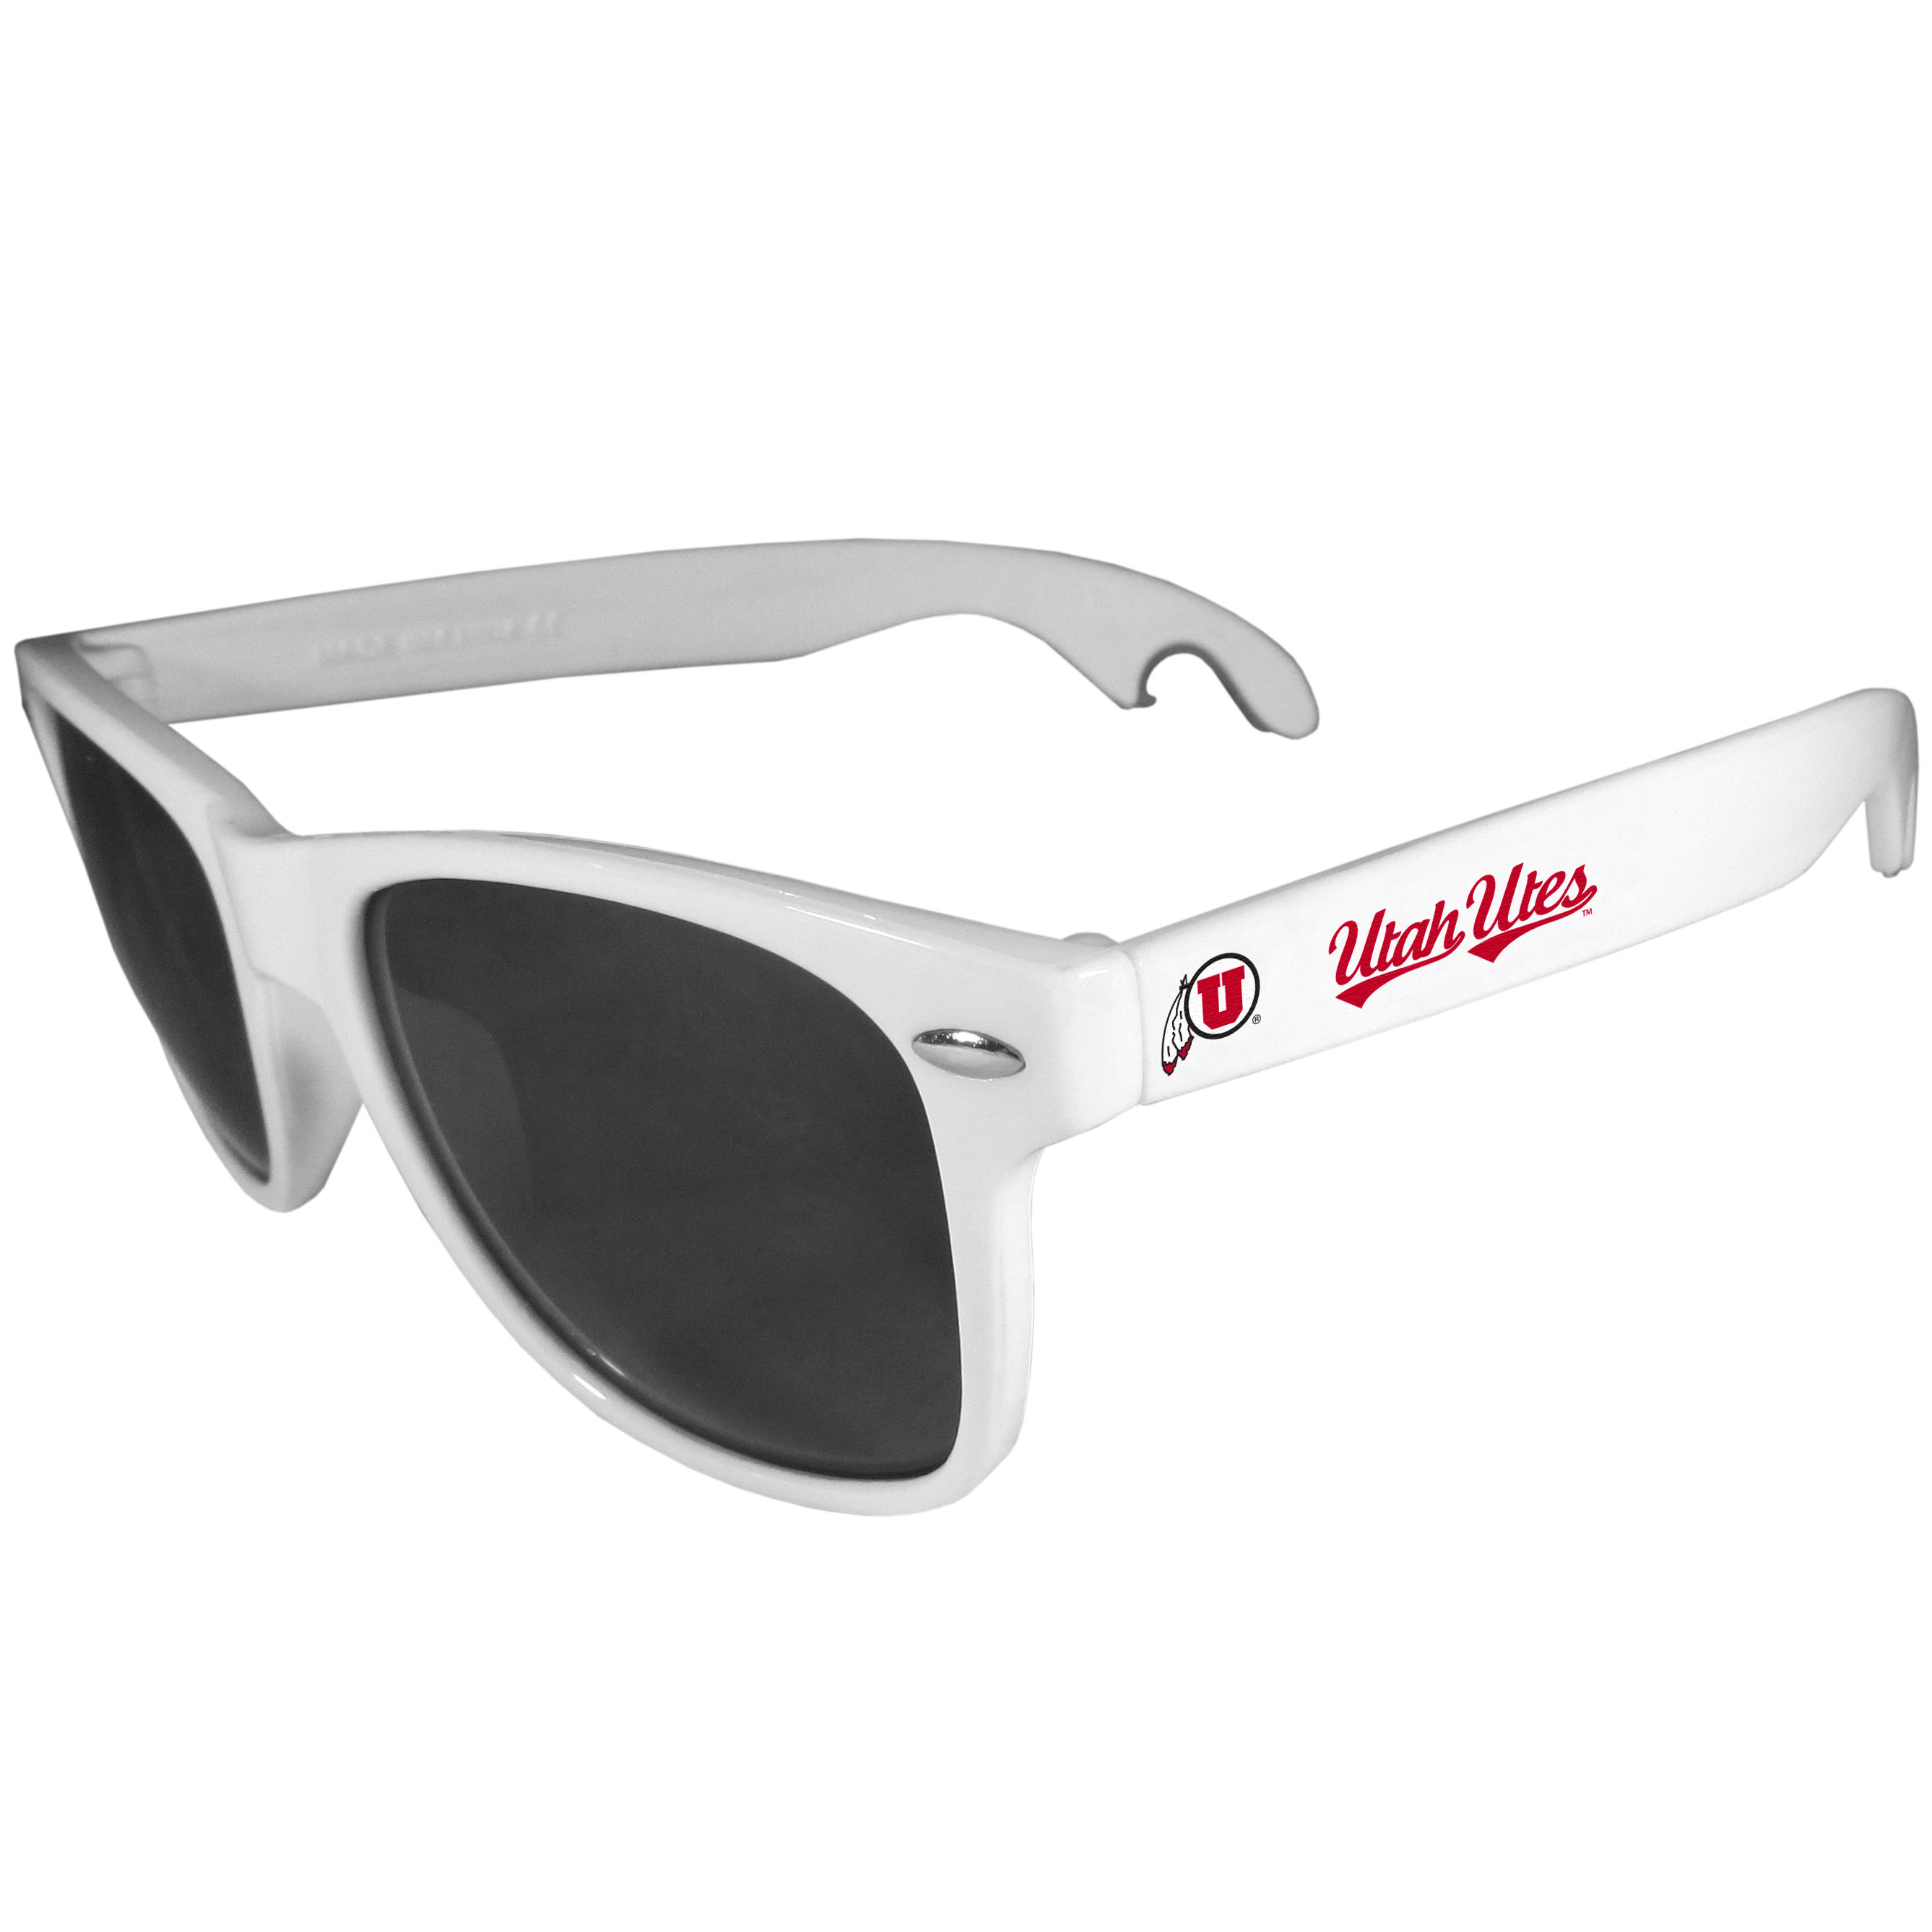 Utah Utes Beachfarer Bottle Opener Sunglasses, White - Seriously, these sunglasses open bottles! Keep the party going with these amazing Utah Utes bottle opener sunglasses. The stylish retro frames feature team designs on the arms and functional bottle openers on the end of the arms. Whether you are at the beach or having a backyard BBQ on game day, these shades will keep your eyes protected with 100% UVA/UVB protection and keep you hydrated with the handy bottle opener arms.